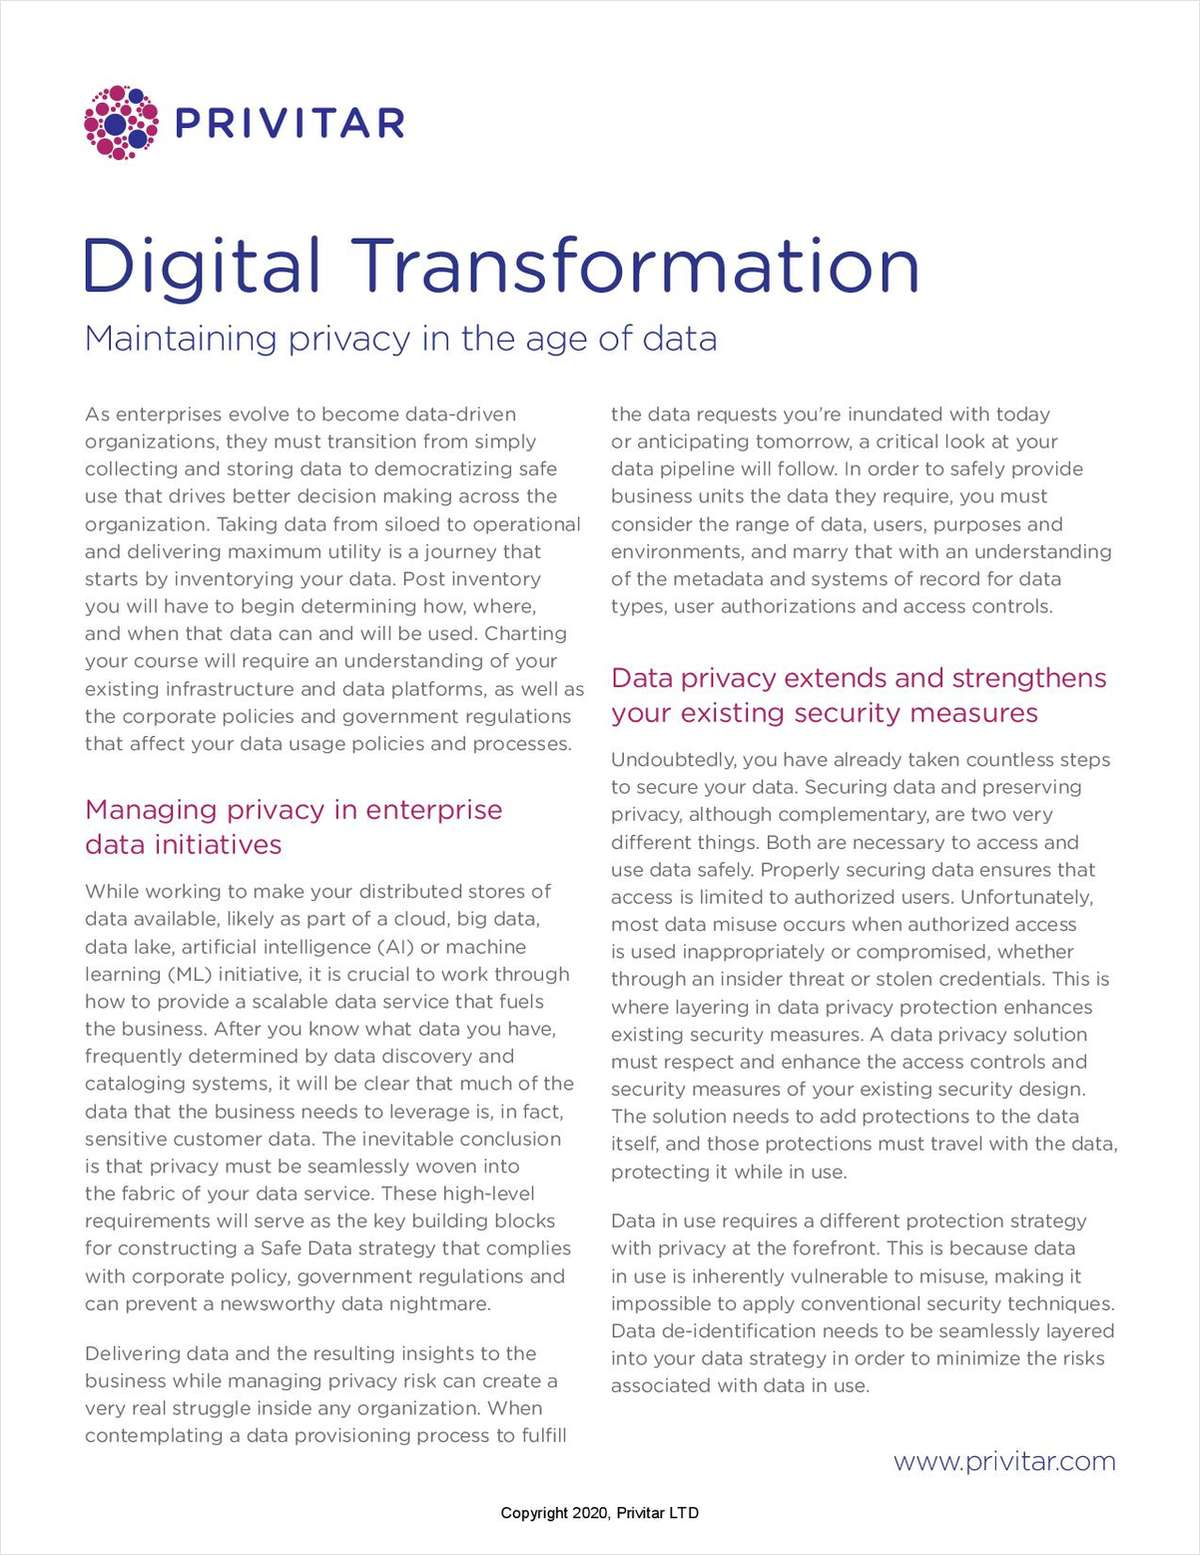 Digital Transformation: Maintaining Privacy in the Age of Data